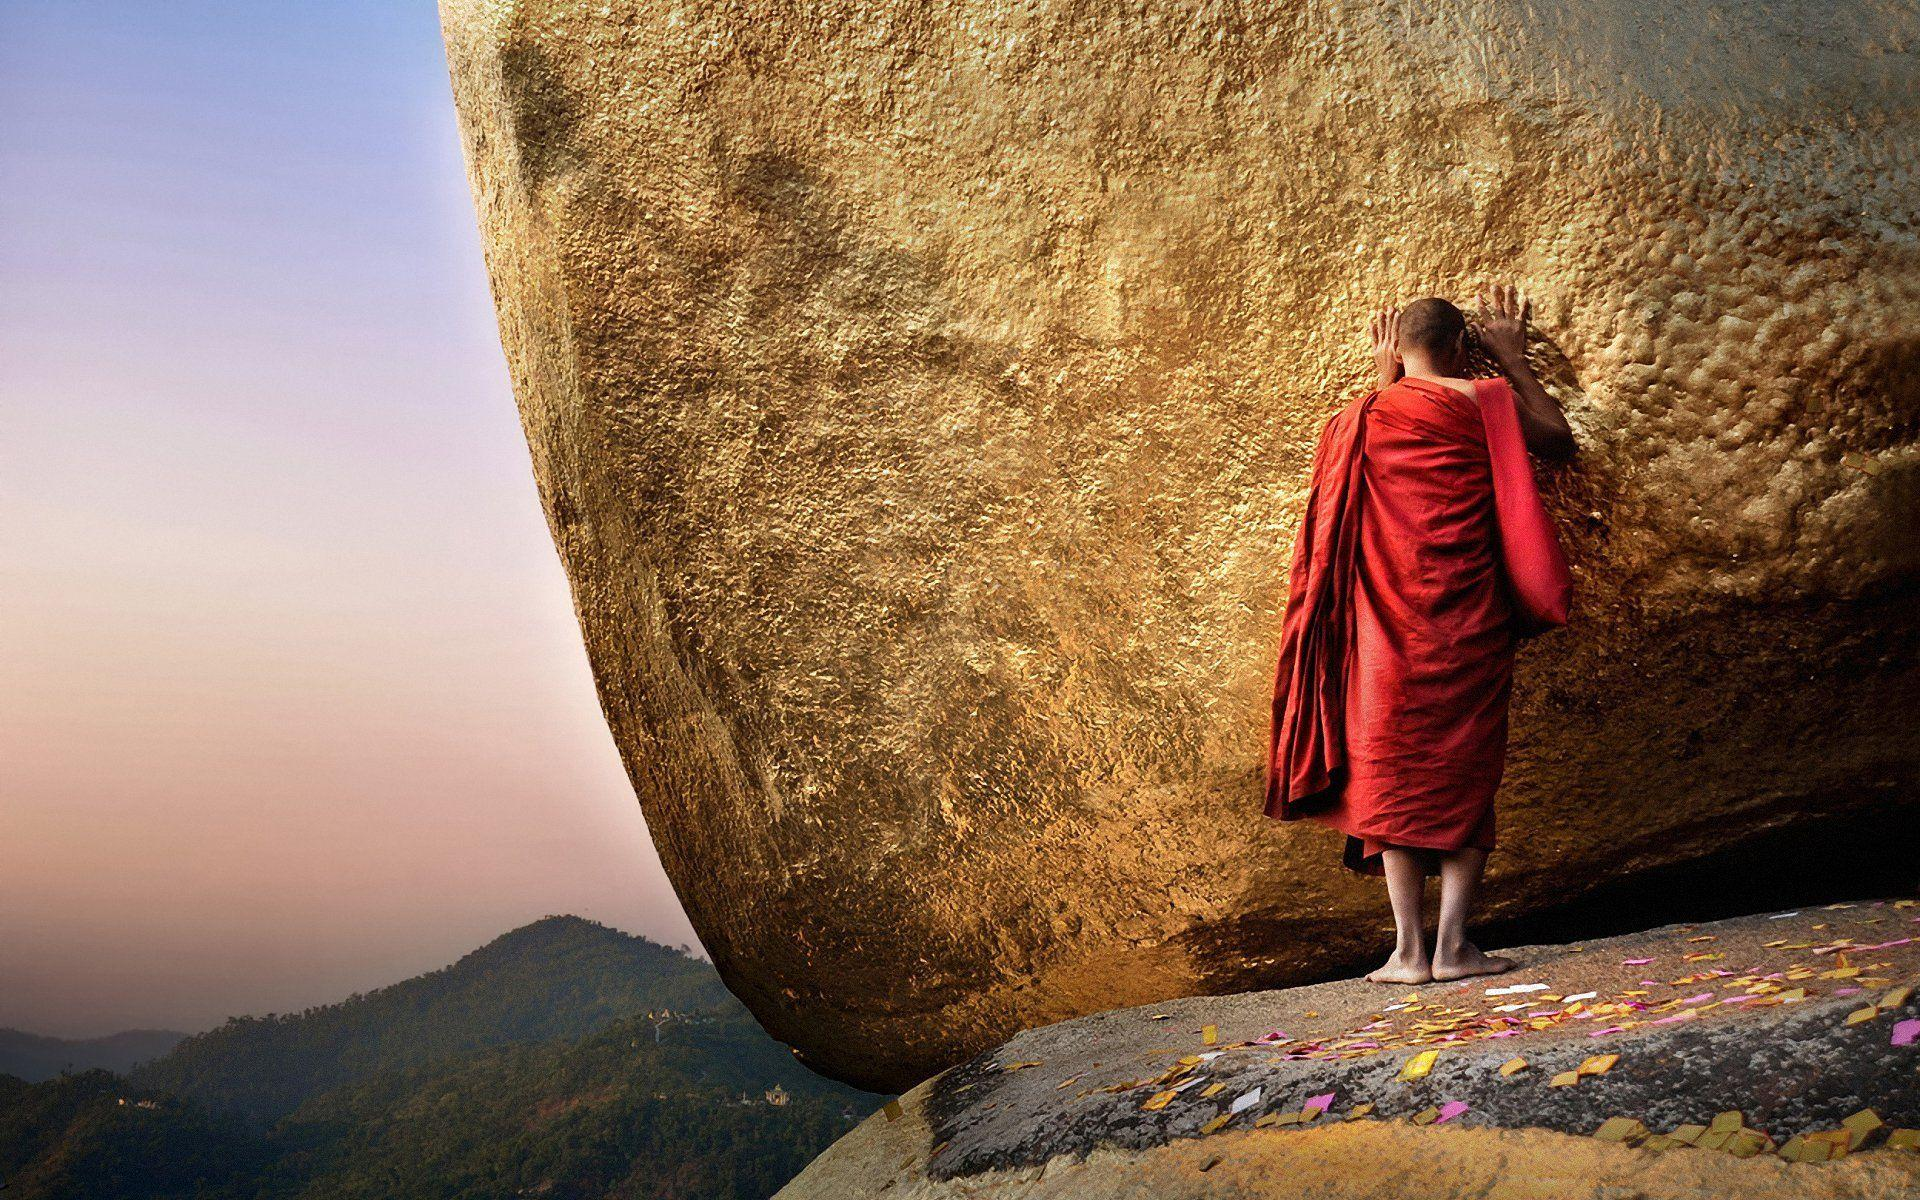 buddha chayttiyo weather gold mountain monk burma myanmar HD wallpapers